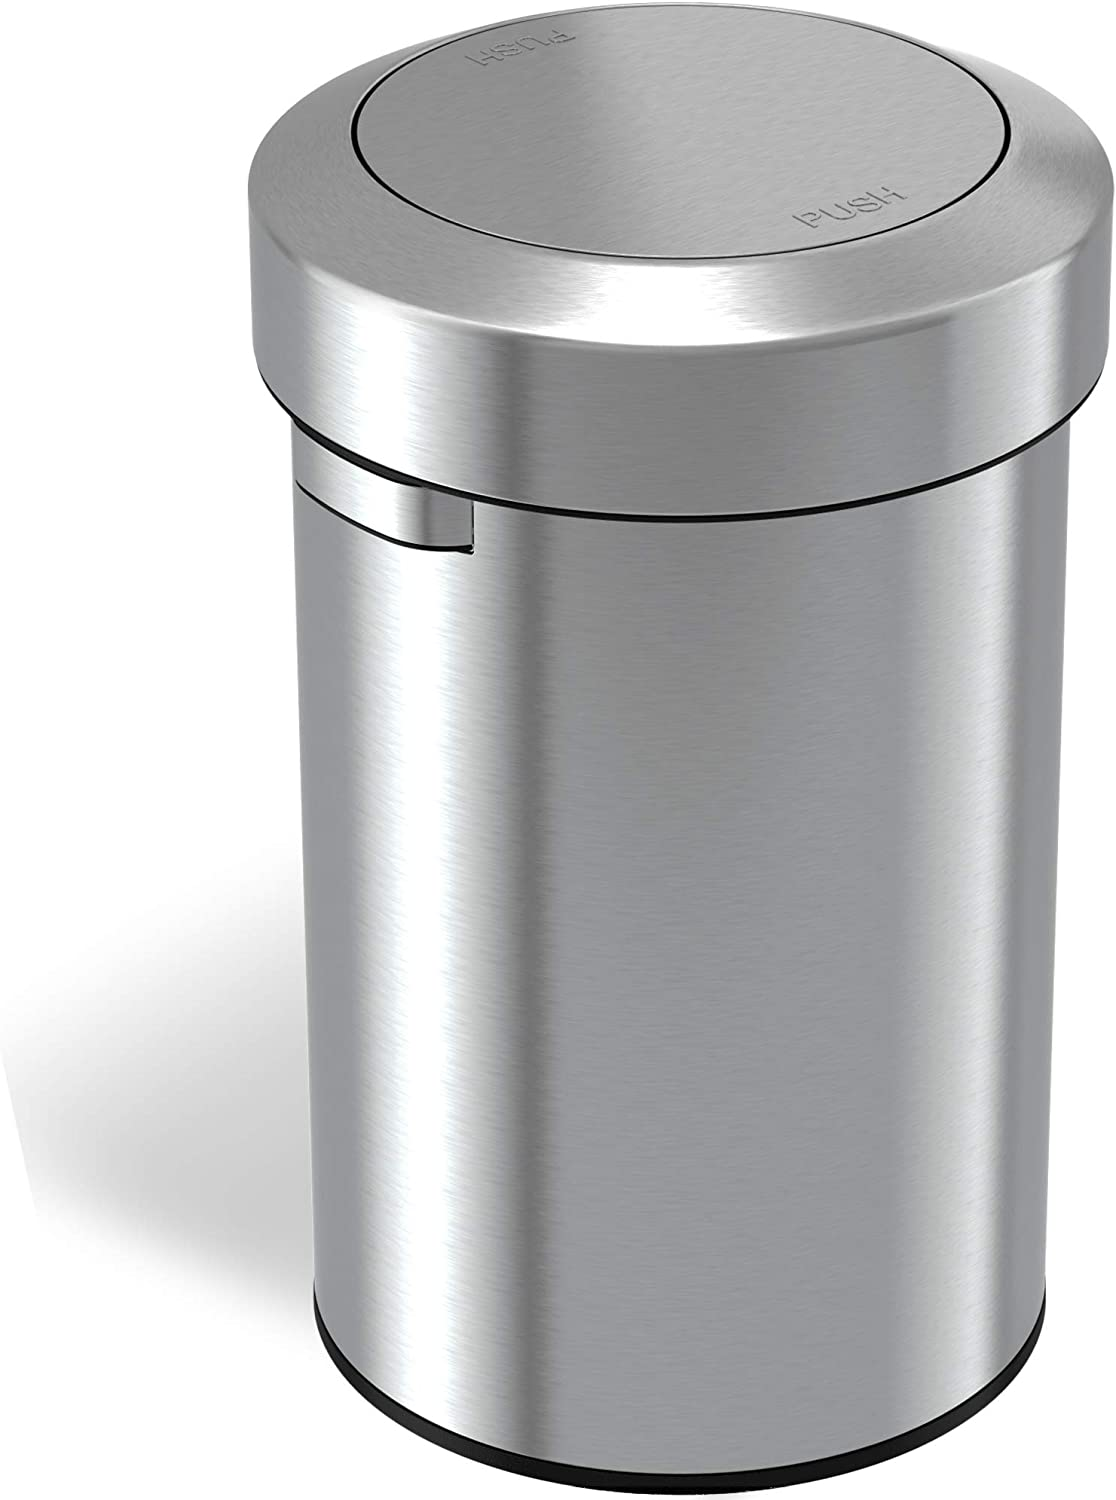 iTouchless 14 Gallon Sliding Lid Automatic Sensor Trash Can with Odor Filter System 52 Liter Stainless Steel Touchless Kitchen Garbage Bin